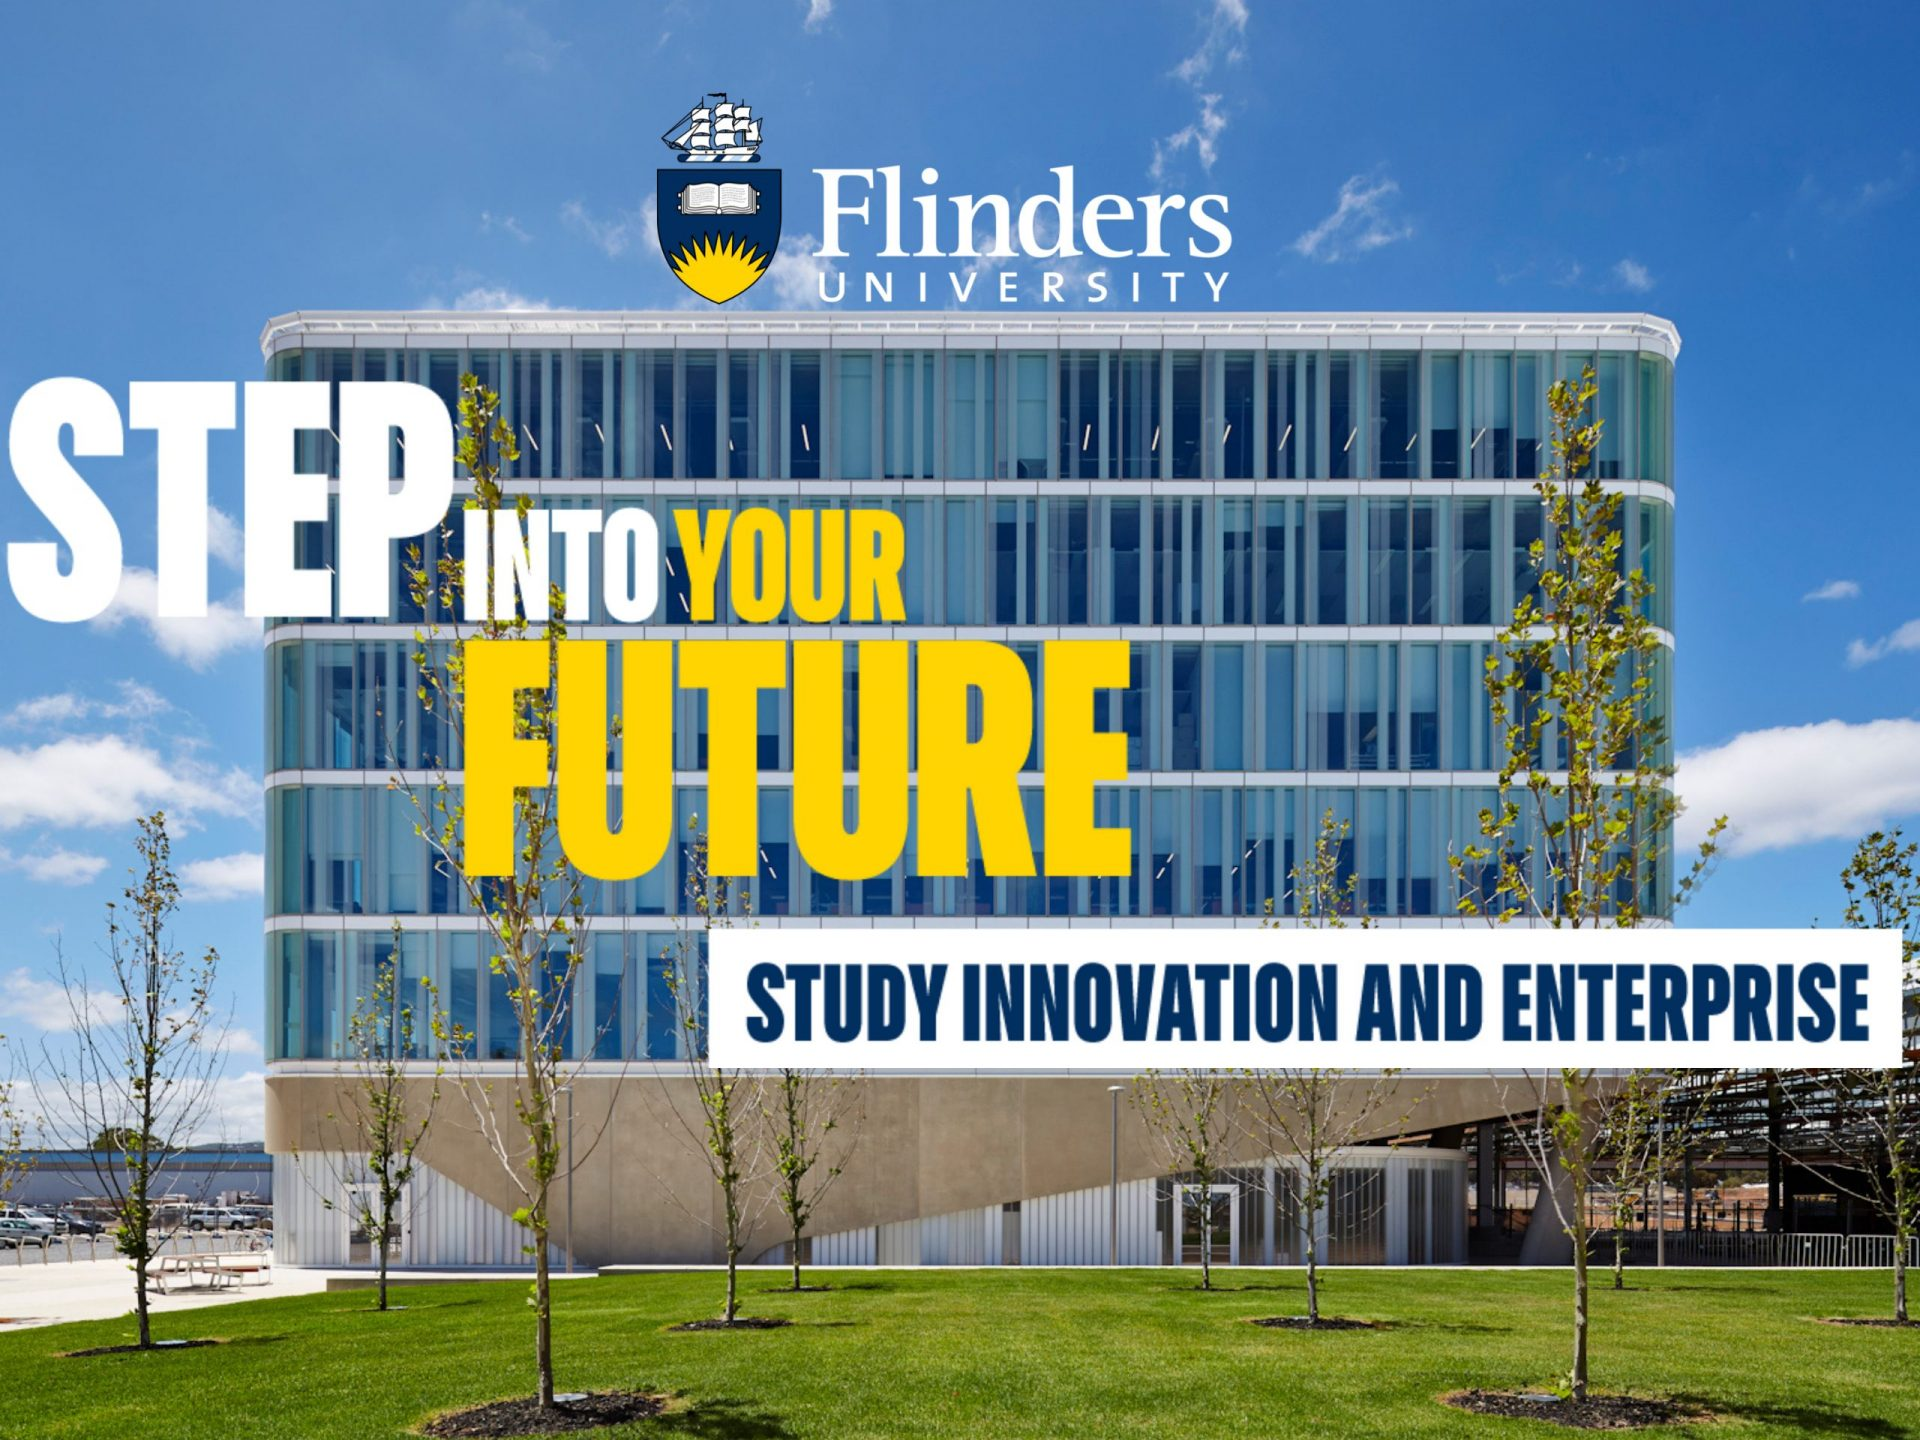 Flinders at Tonsley building in the background with Step into your future - study innovation and enterprise writing in the foreground